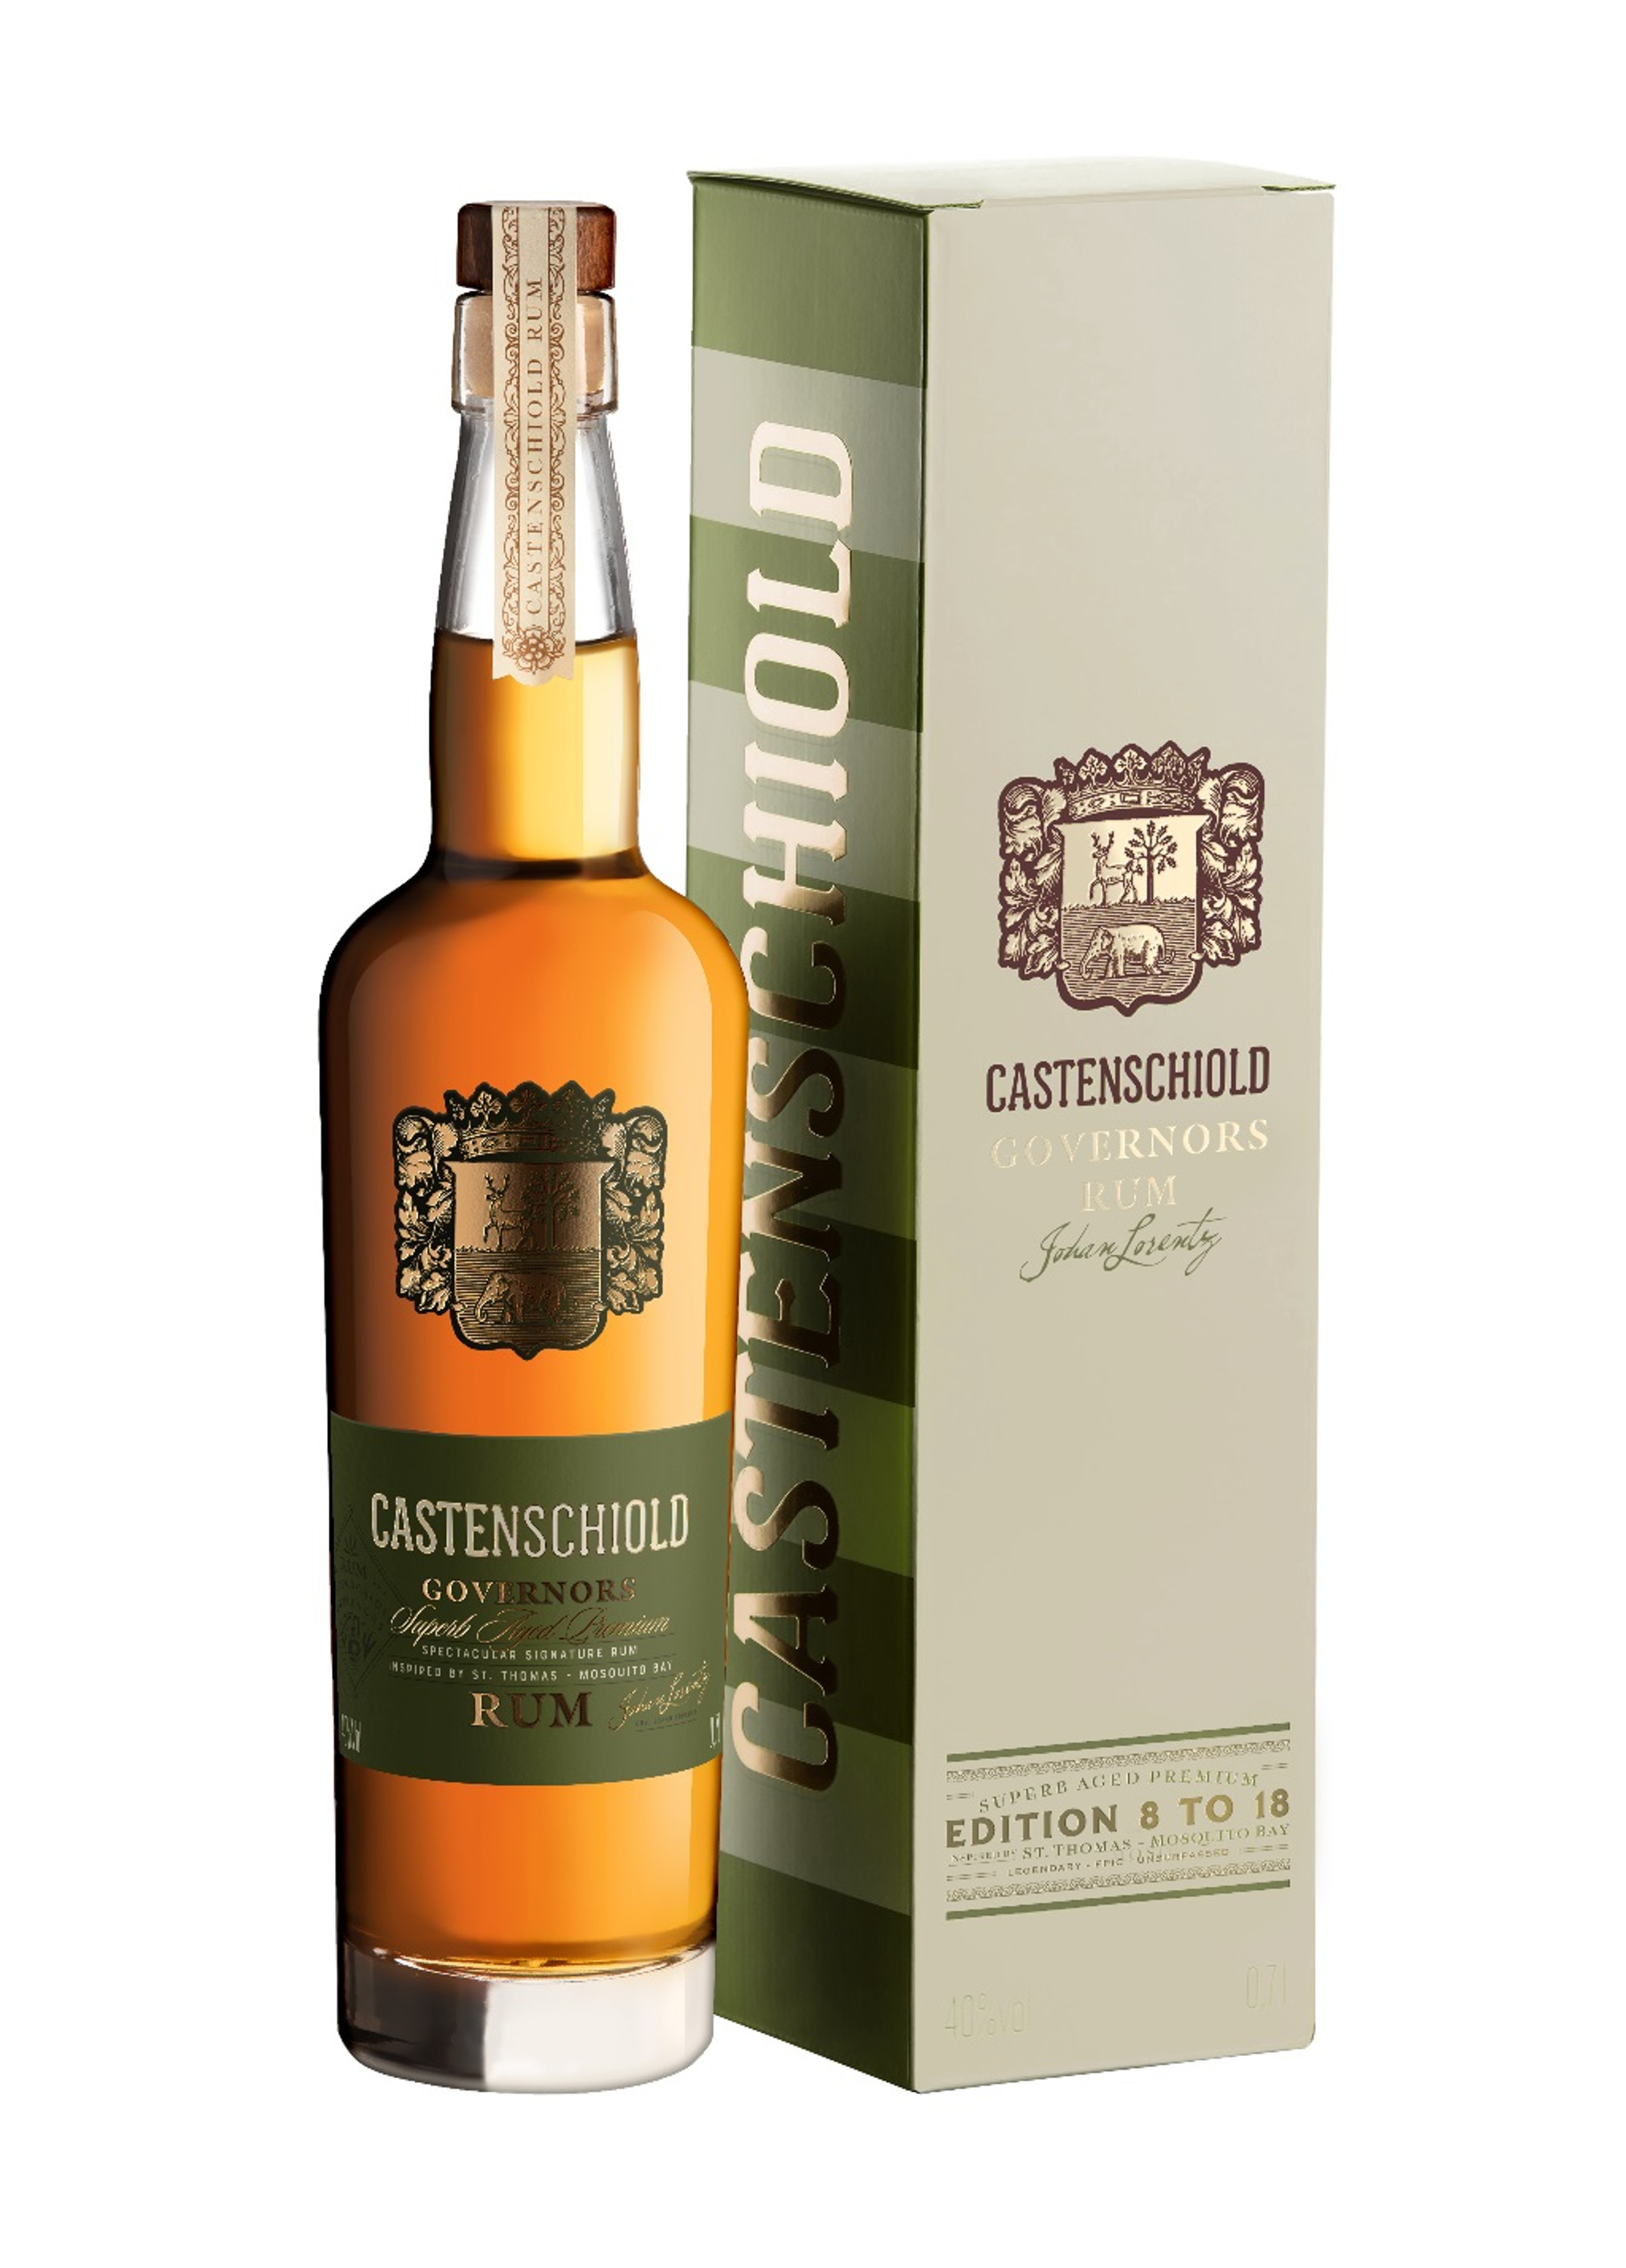 Castenschiold Governors Rum 0,7l 40 %Vol - EDITION 8 TO 18